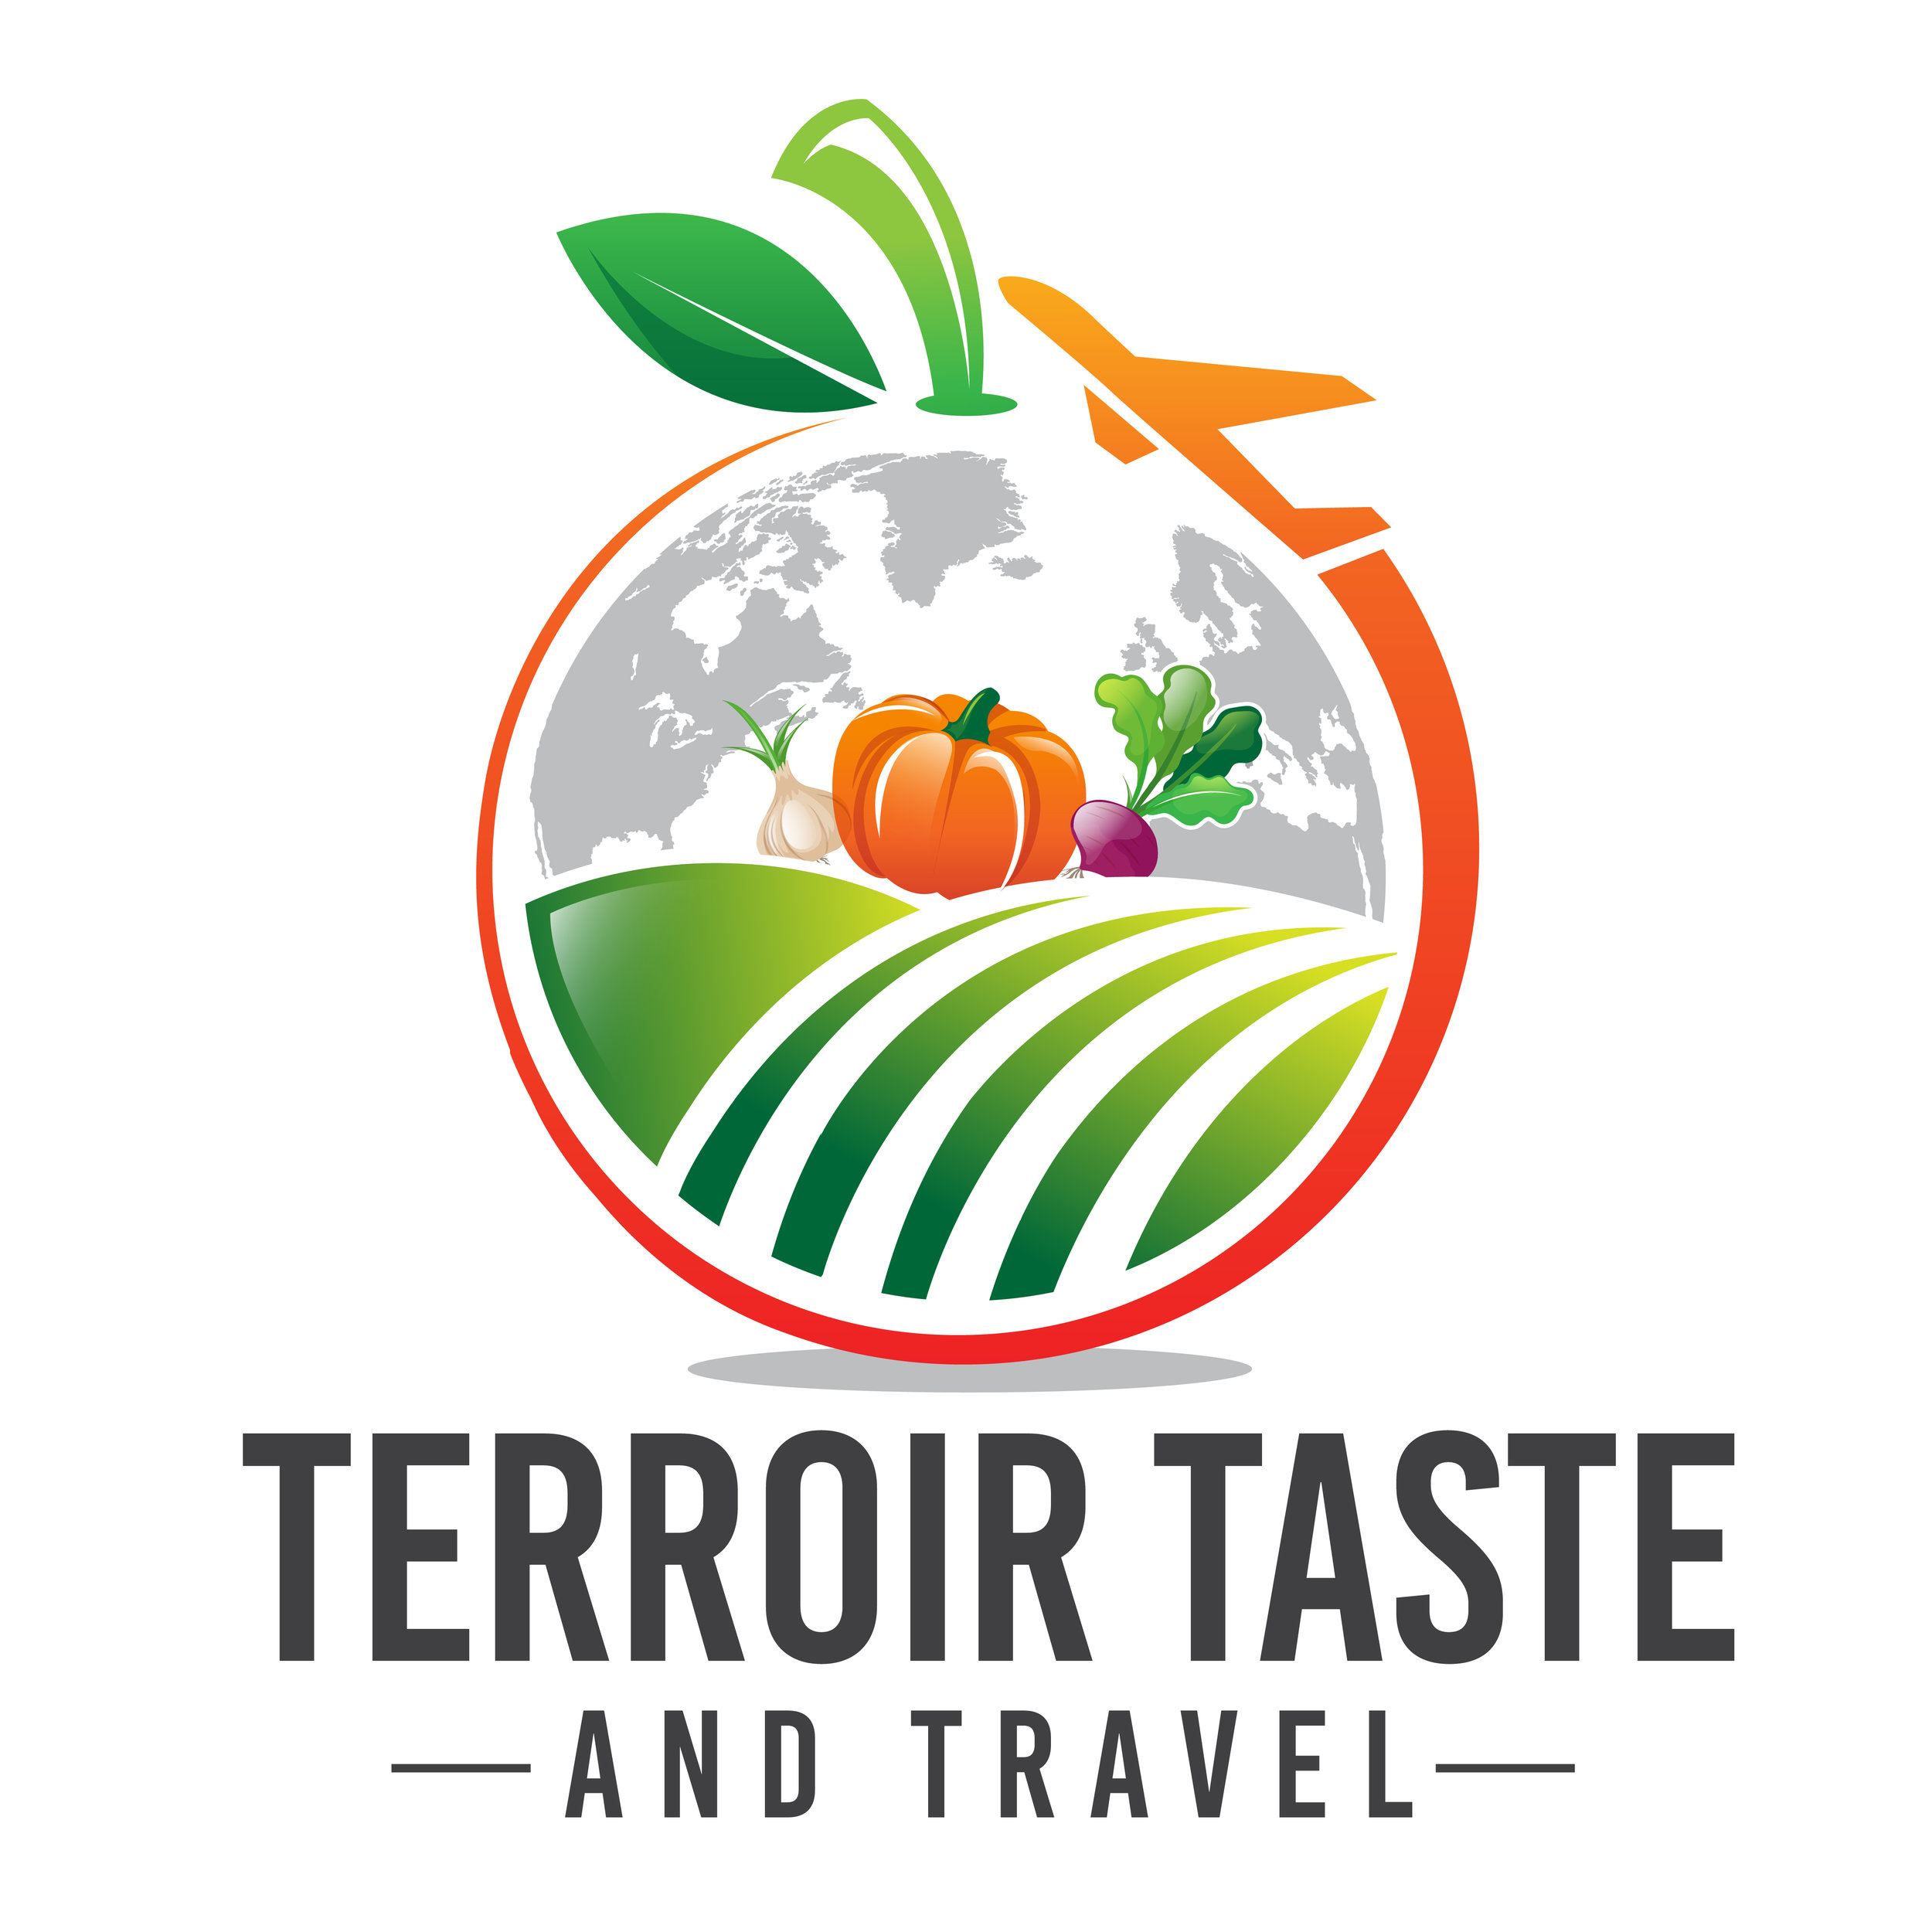 Terroir Taste and Travel-01.jpg